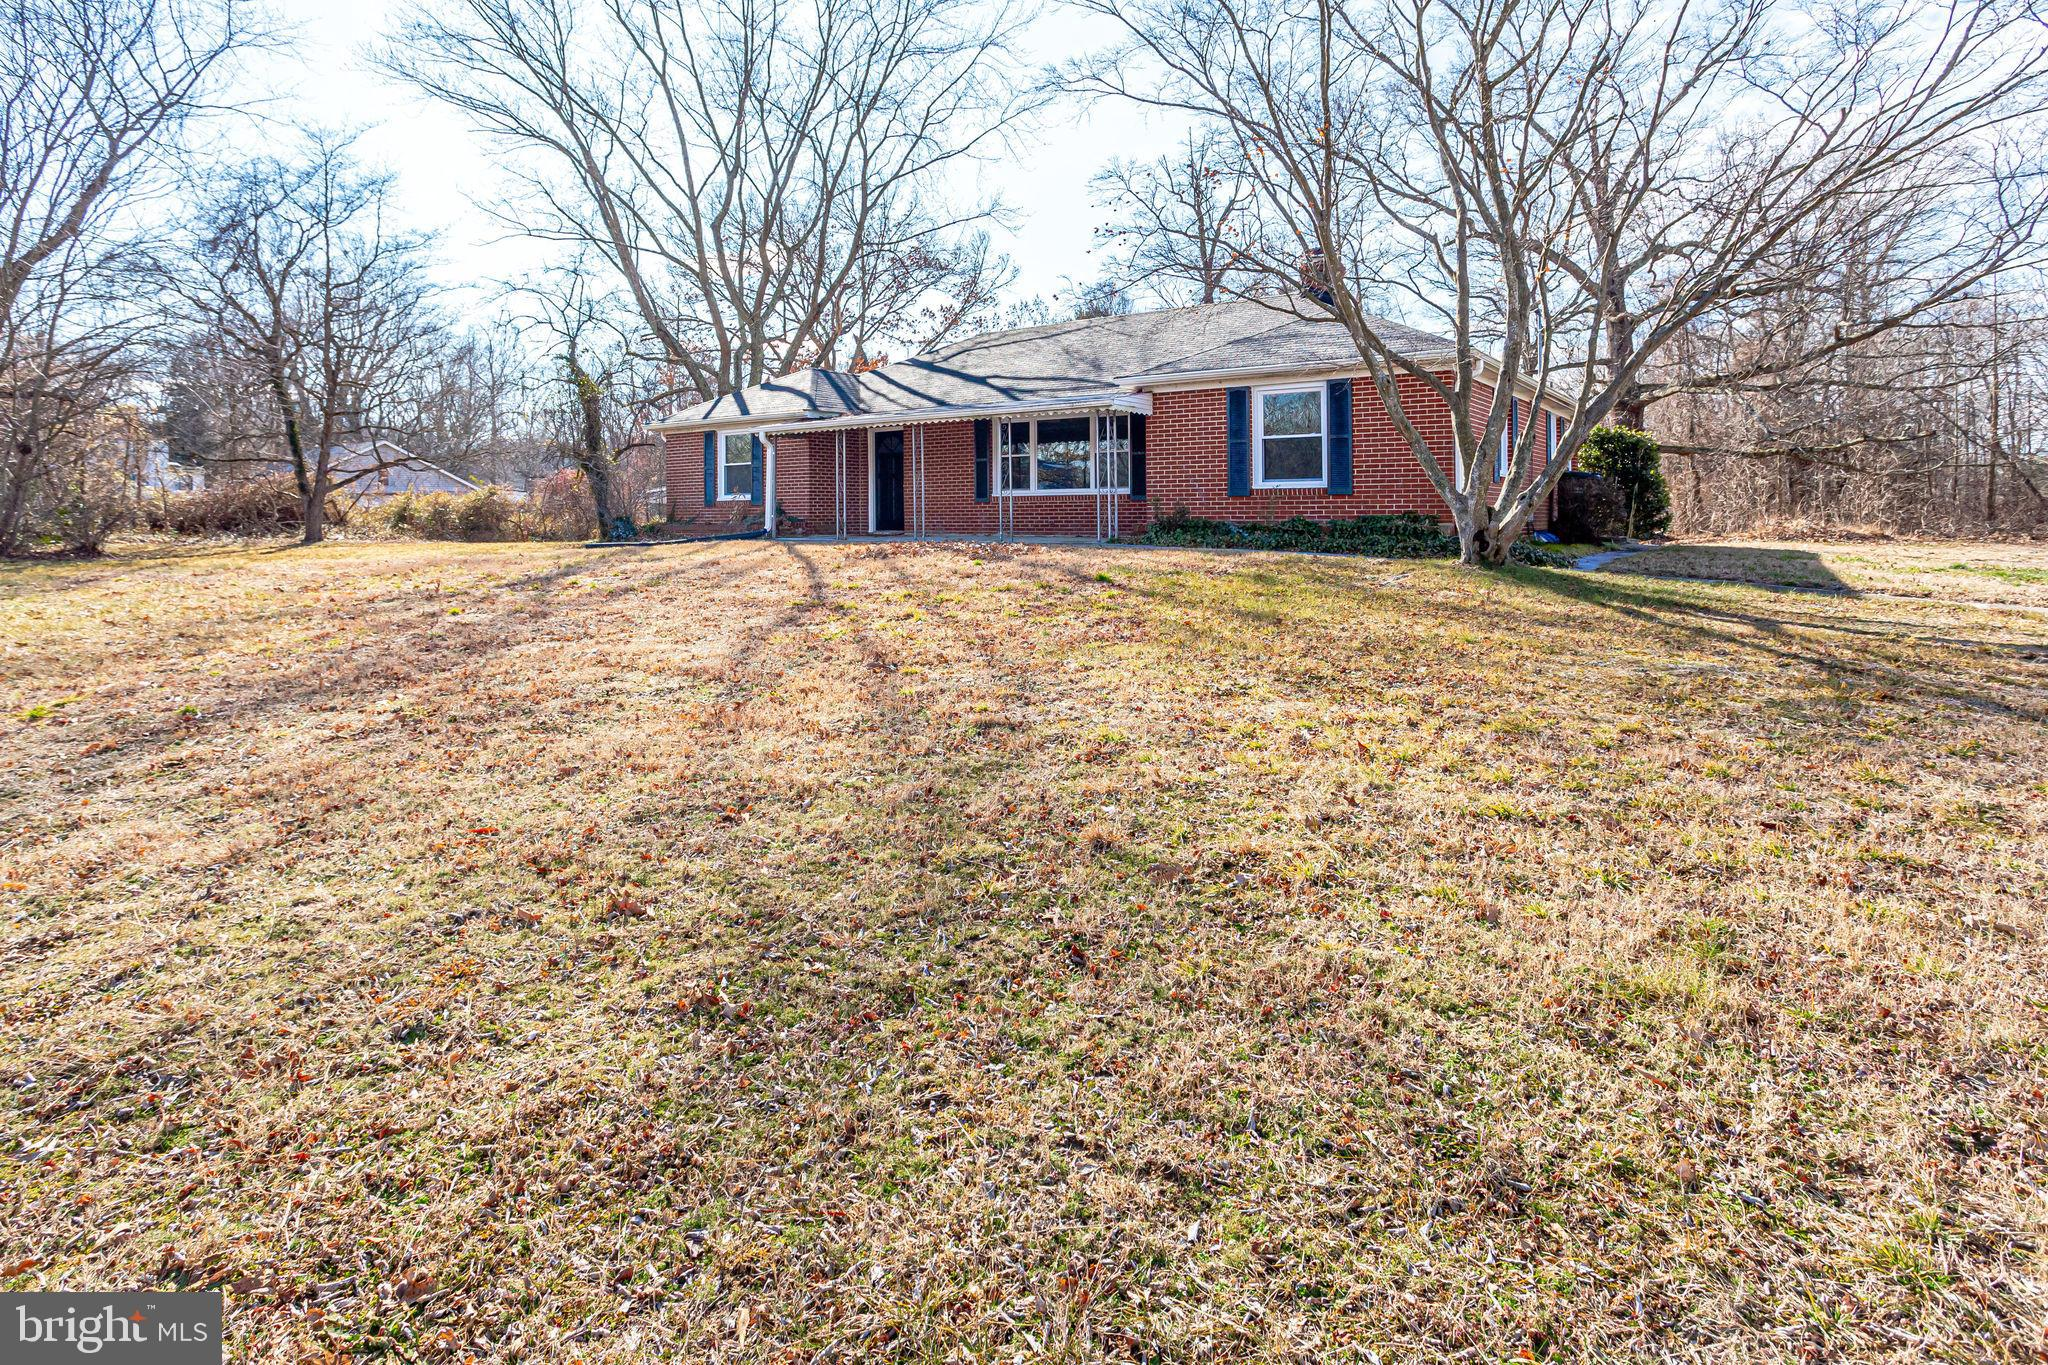 JUST REDUCED! Welcome Home to Solomons Island! The hunt is over once you tour this all brick Hunting